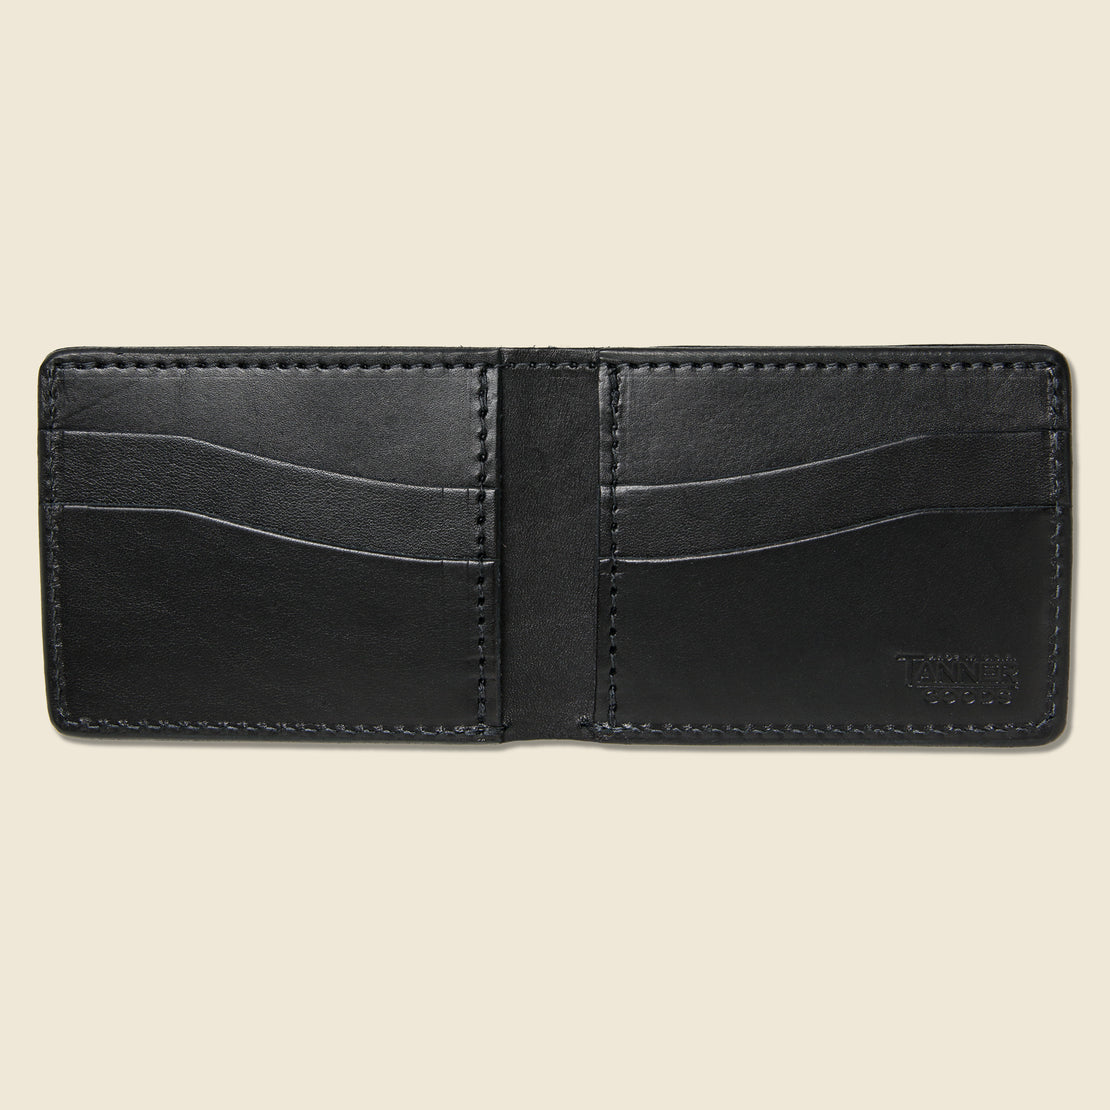 Utility Bifold Wallet - Black - Tanner - STAG Provisions - Accessories - Wallets